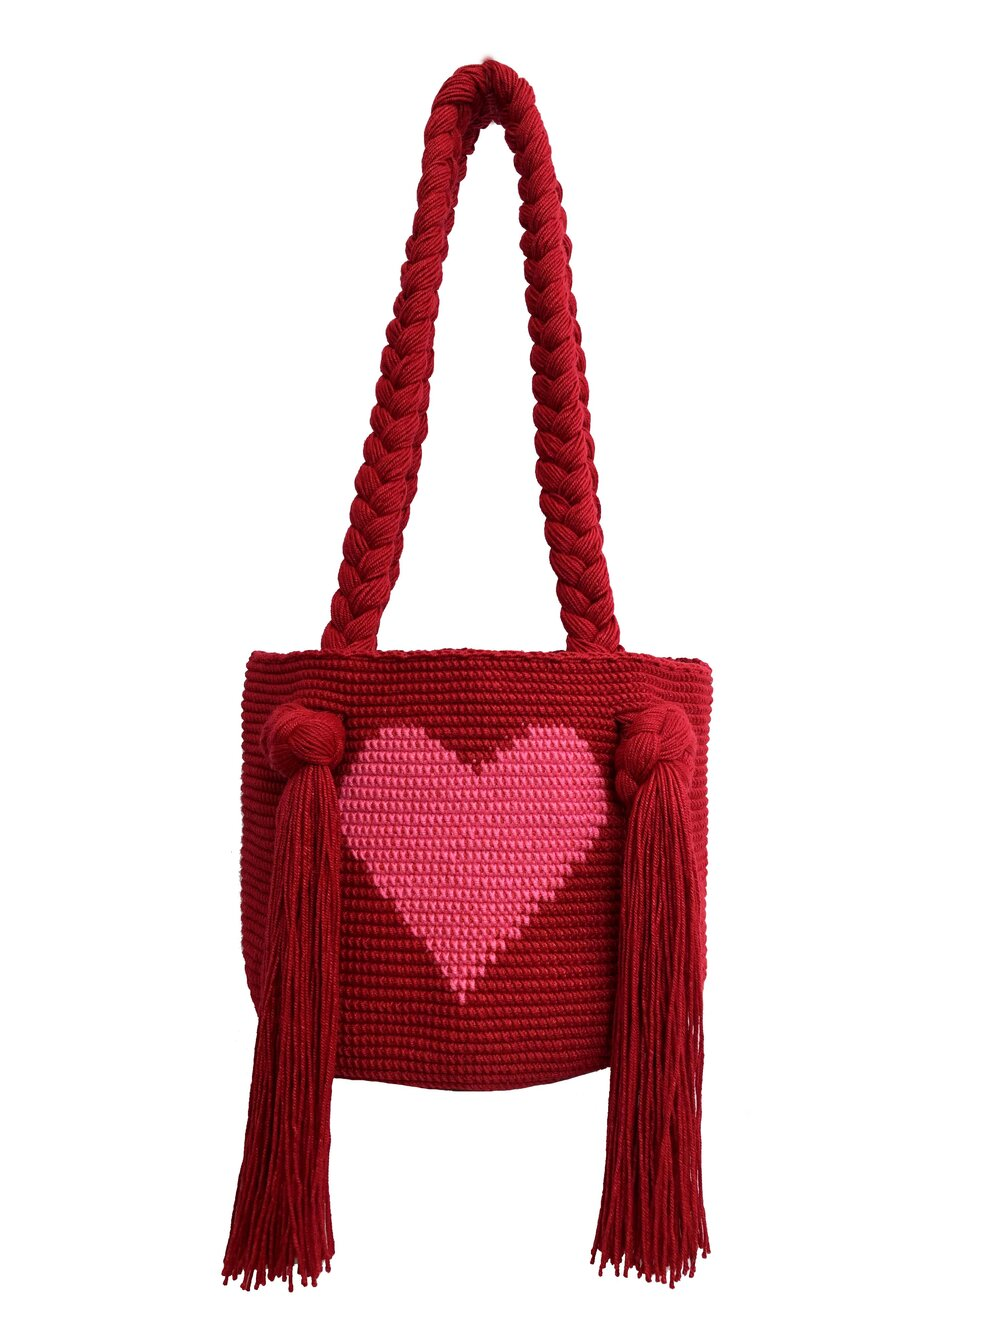 Love Mini Bag (Long Handle) - JETLAGMODE